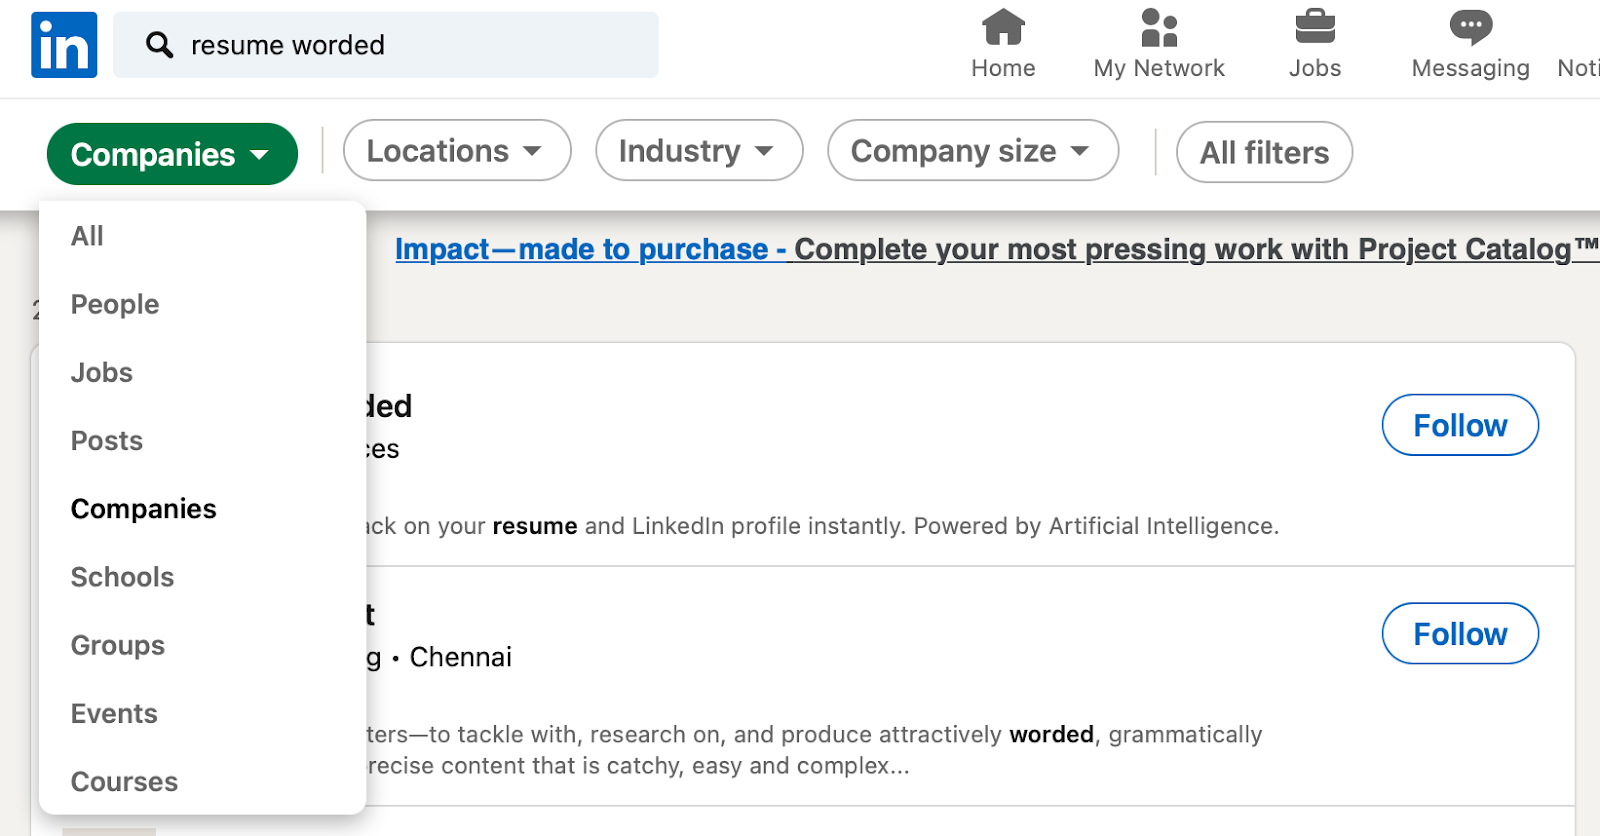 Searching for recruiters on LinkedIn starts with identifying the companies you want to find recruiters at..